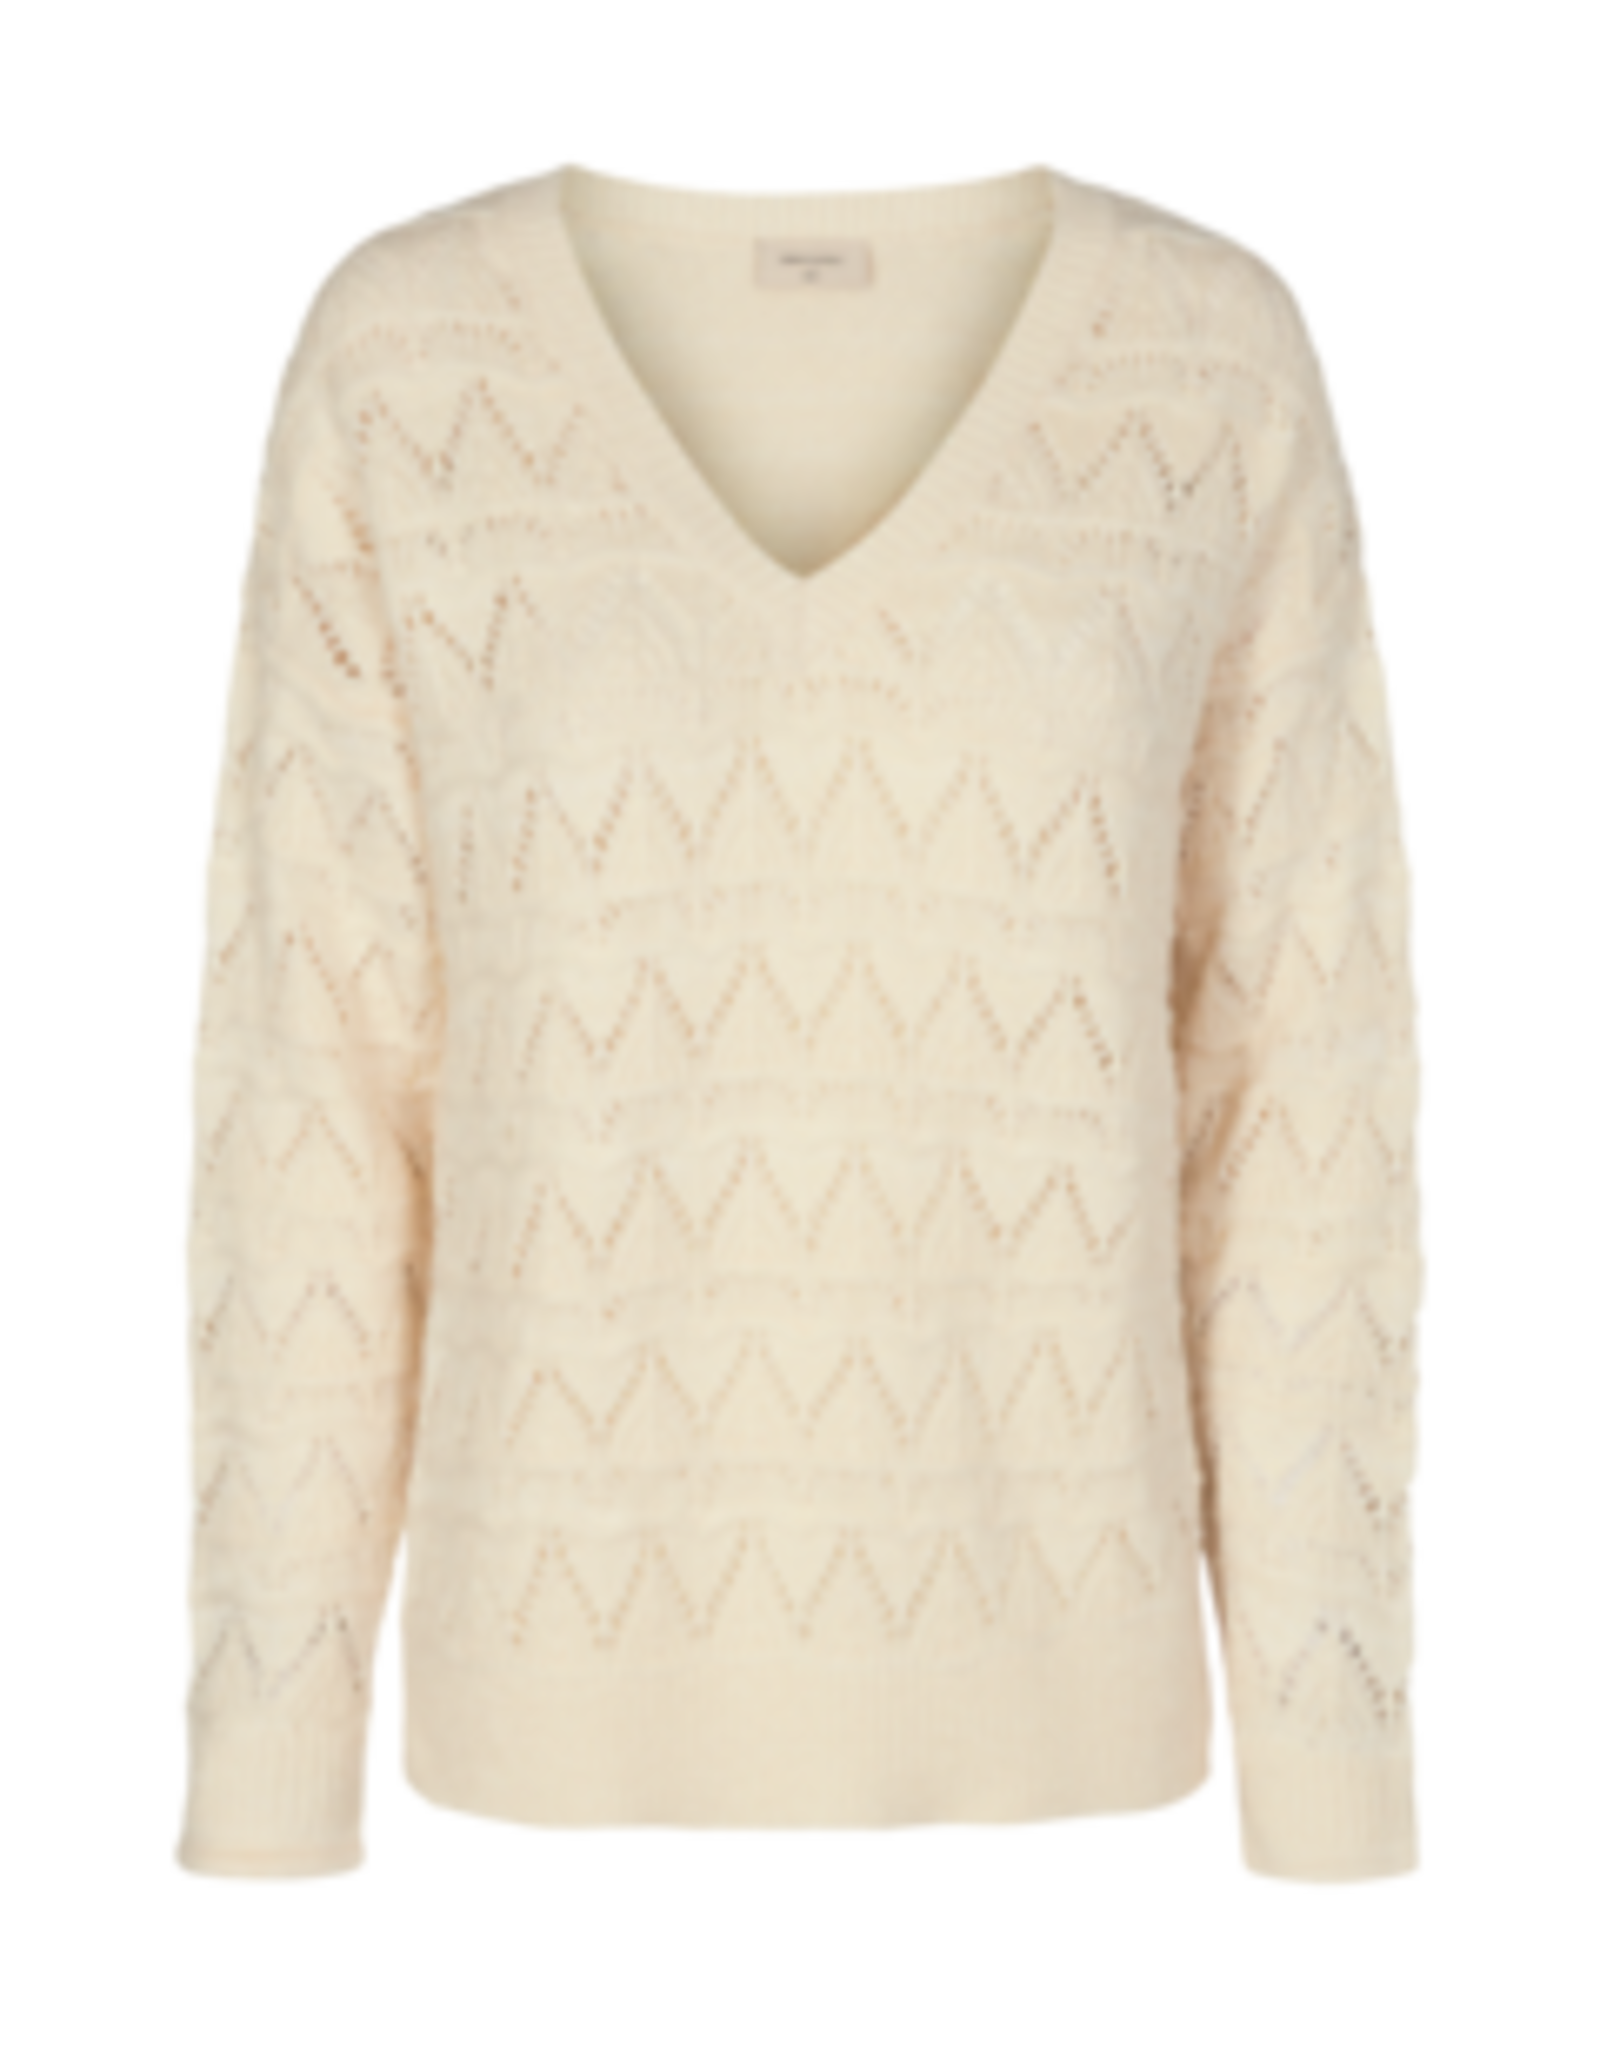 Free/Quent Free/Quent Tina Pullover